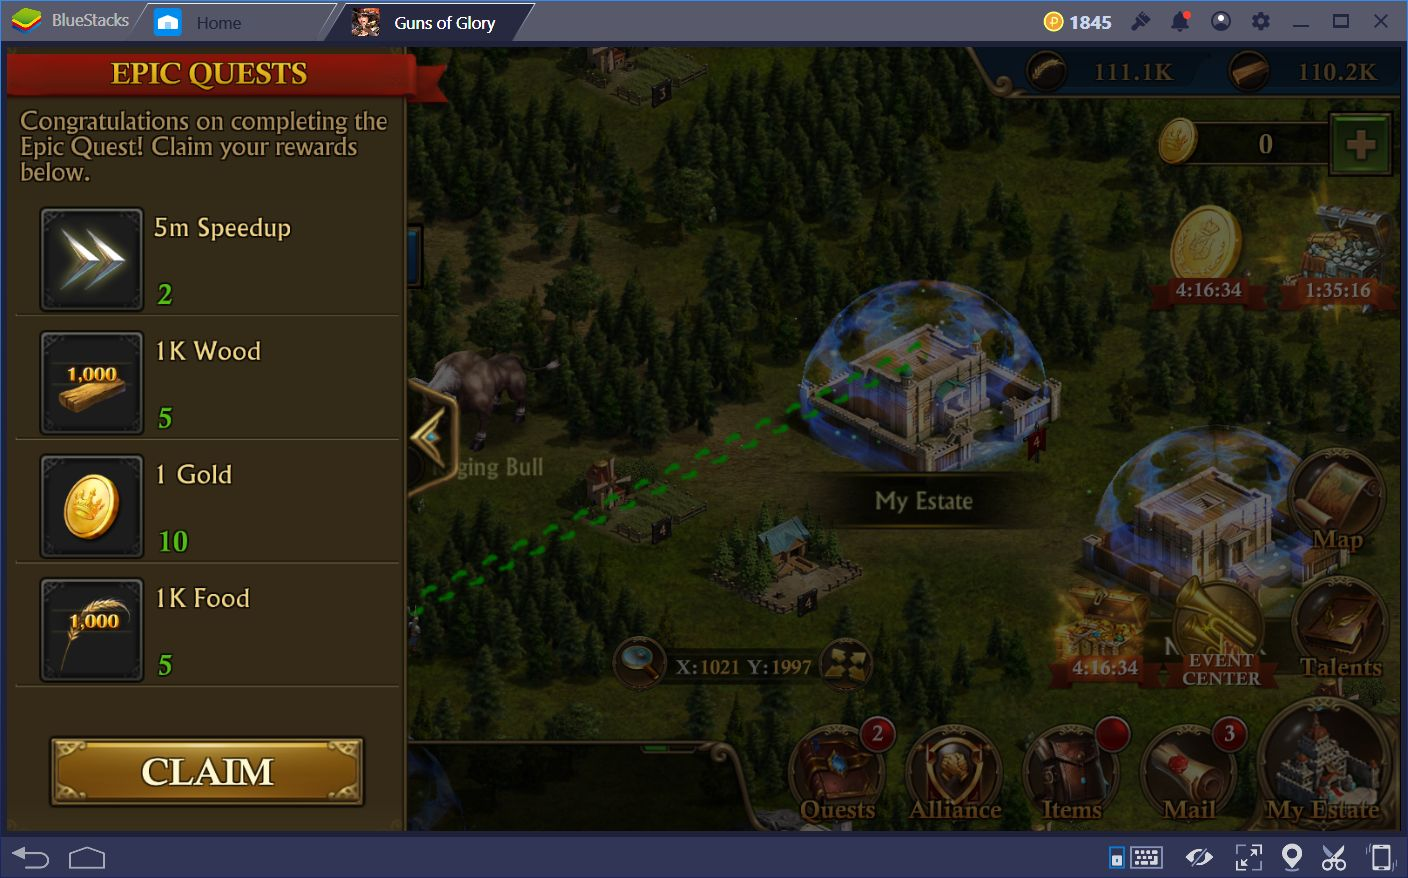 Tips and Tricks to Improve Your Success in Guns of Glory on PC